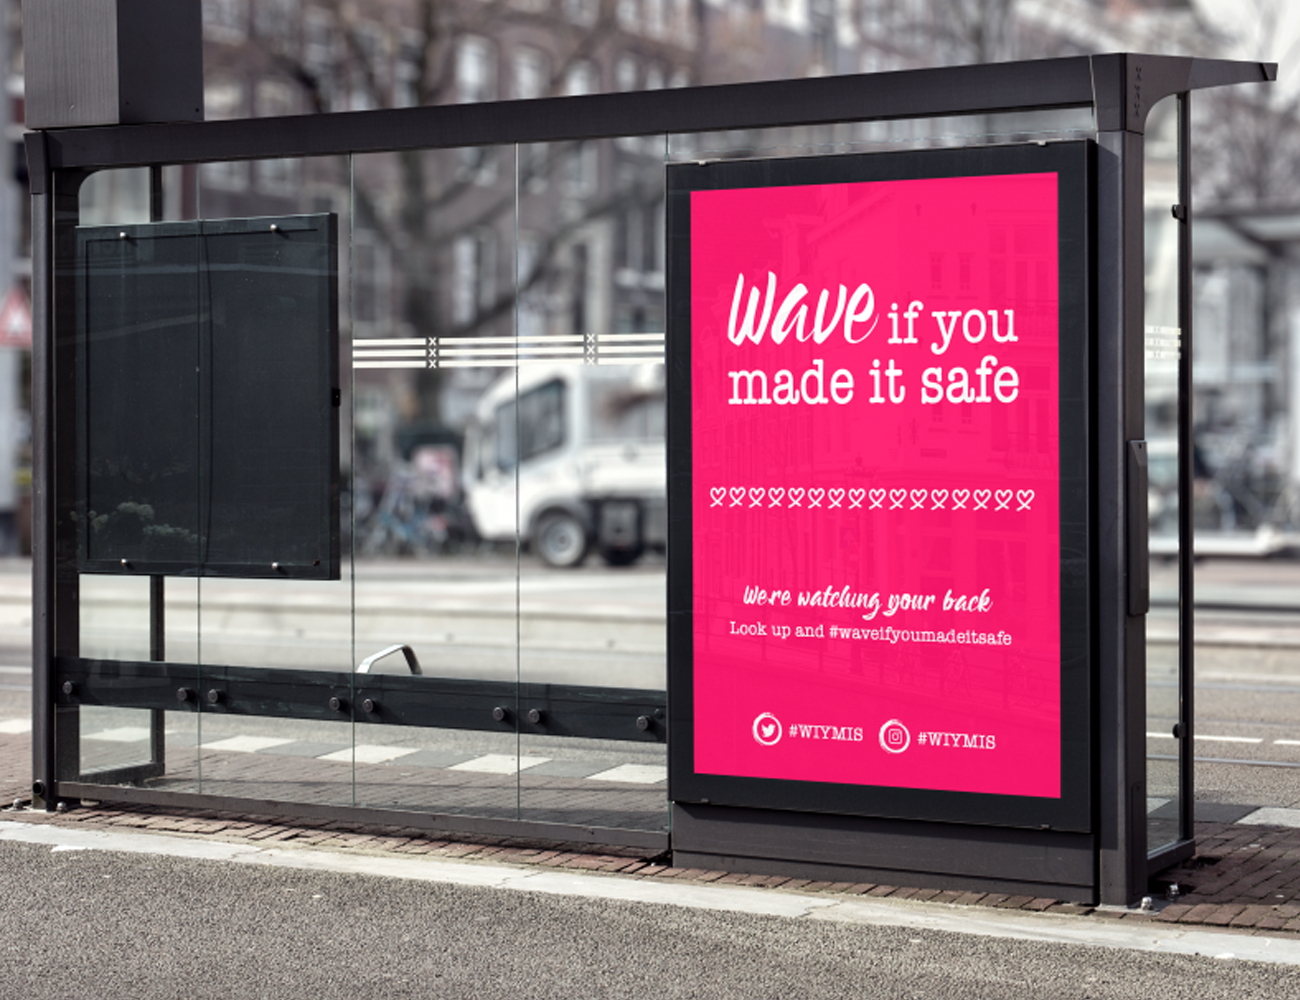 Social Experiment by A-Town Agency | Wave if you made it safe Amsterdam